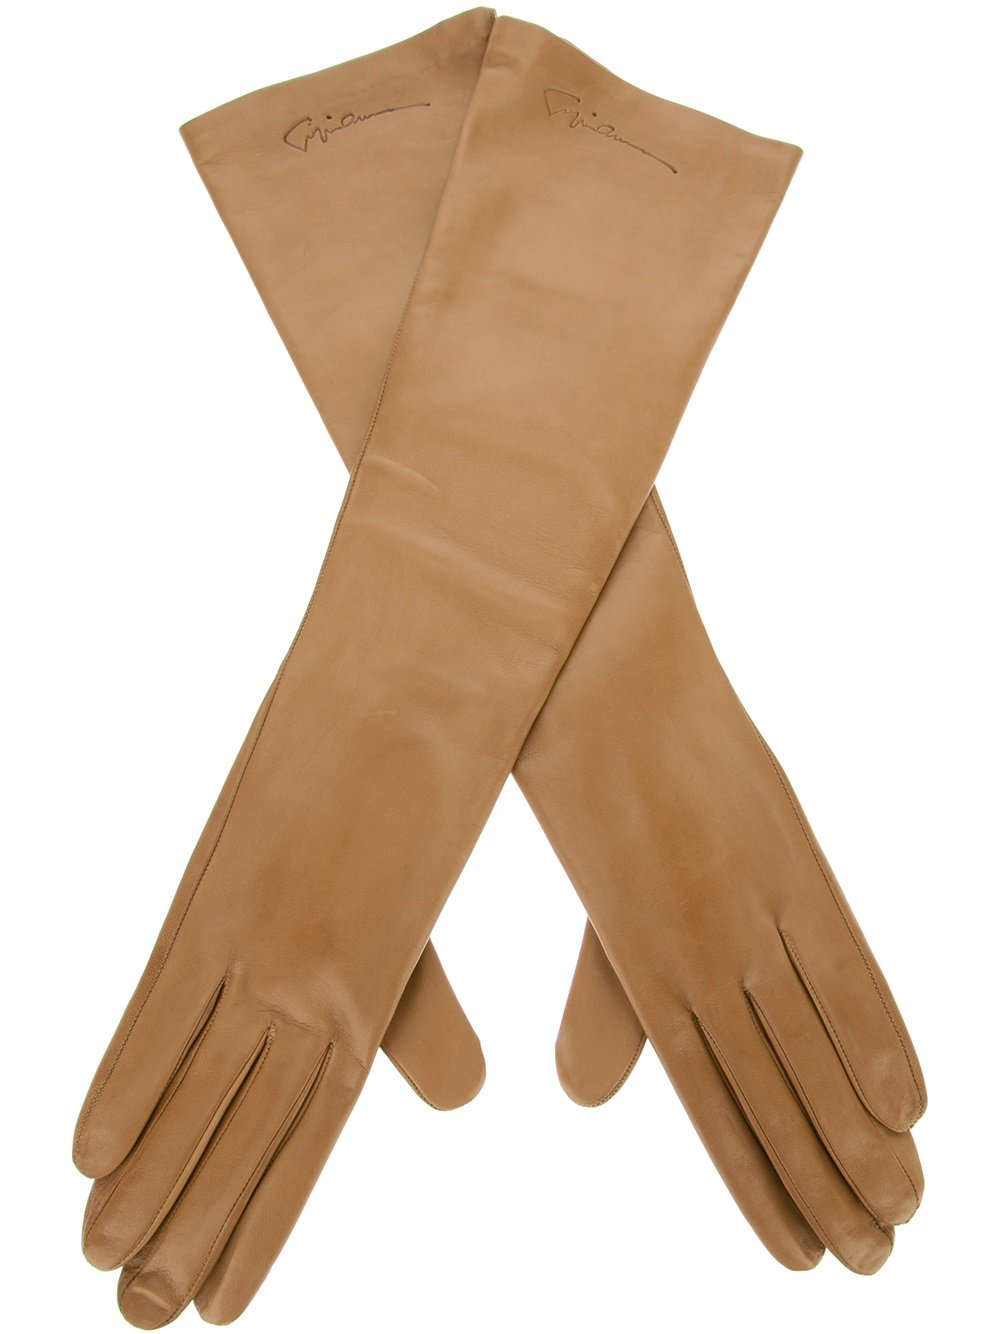 Rothco Coyote Brown D-3A Type Military Leather Gloves. Sold by Army Universe. $ $ Rothco Black D-3A Type Military Leather Gloves. Sold by Army Universe. $ Rapid Dominance T22 - Air Mesh - Digital Leather Glove. Sold by Bidlessnow. $ $